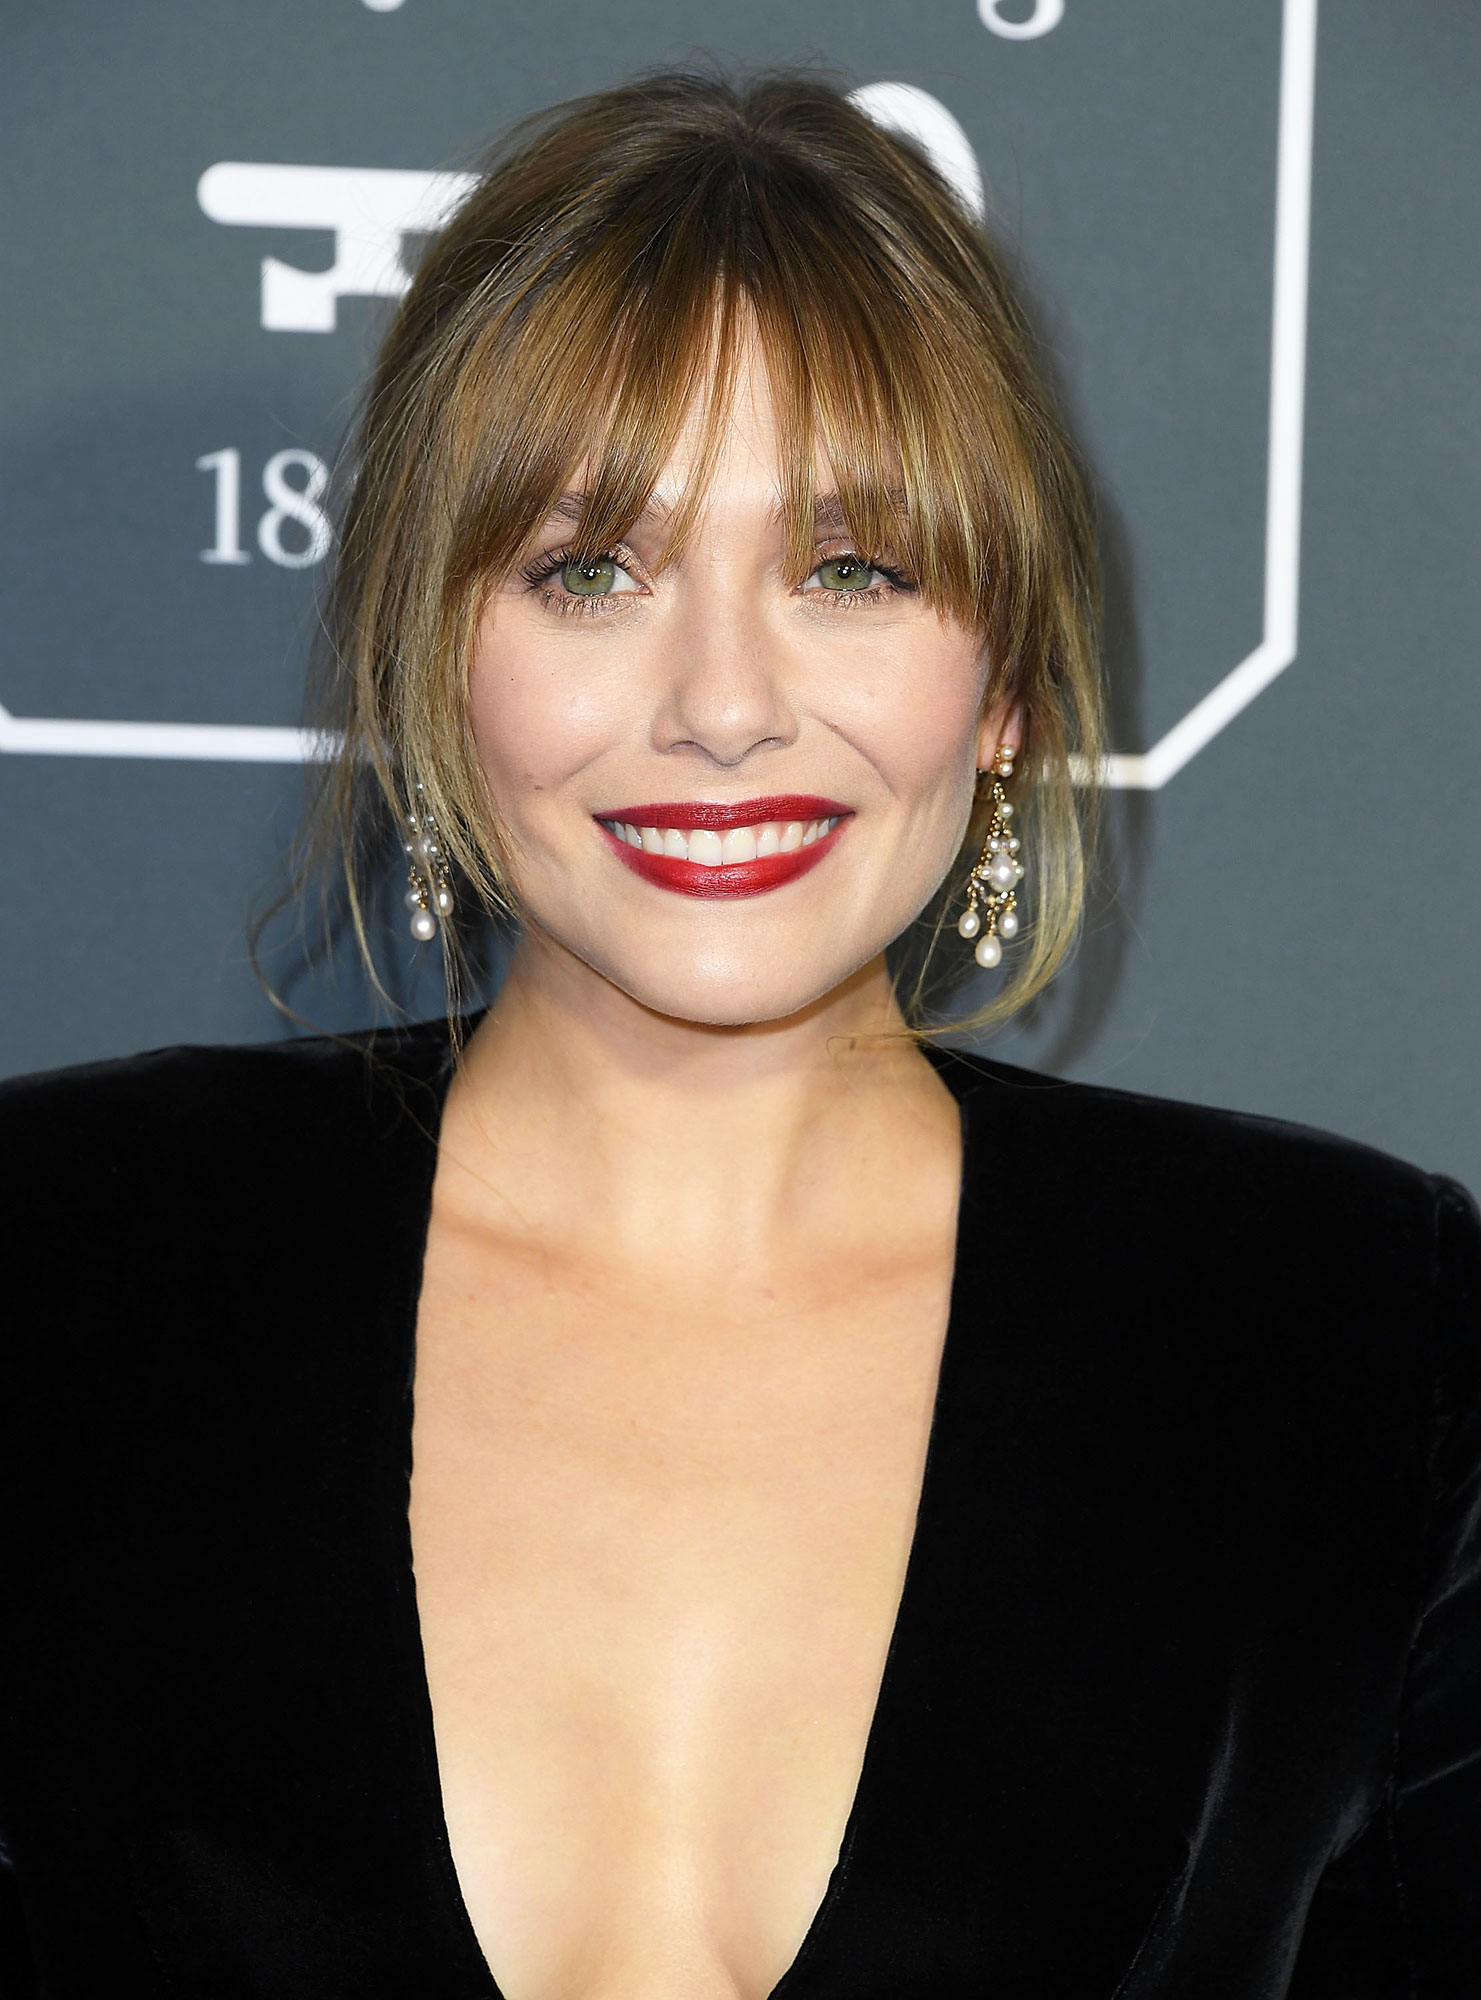 Elizabeth Olsen Celebrity Bangs: Fierce Fringe Inspo For Your Next Haircut - Eyelash-length wispies made the perfect complement to the actress' updo at the 2019 Critics' Choice Awards.